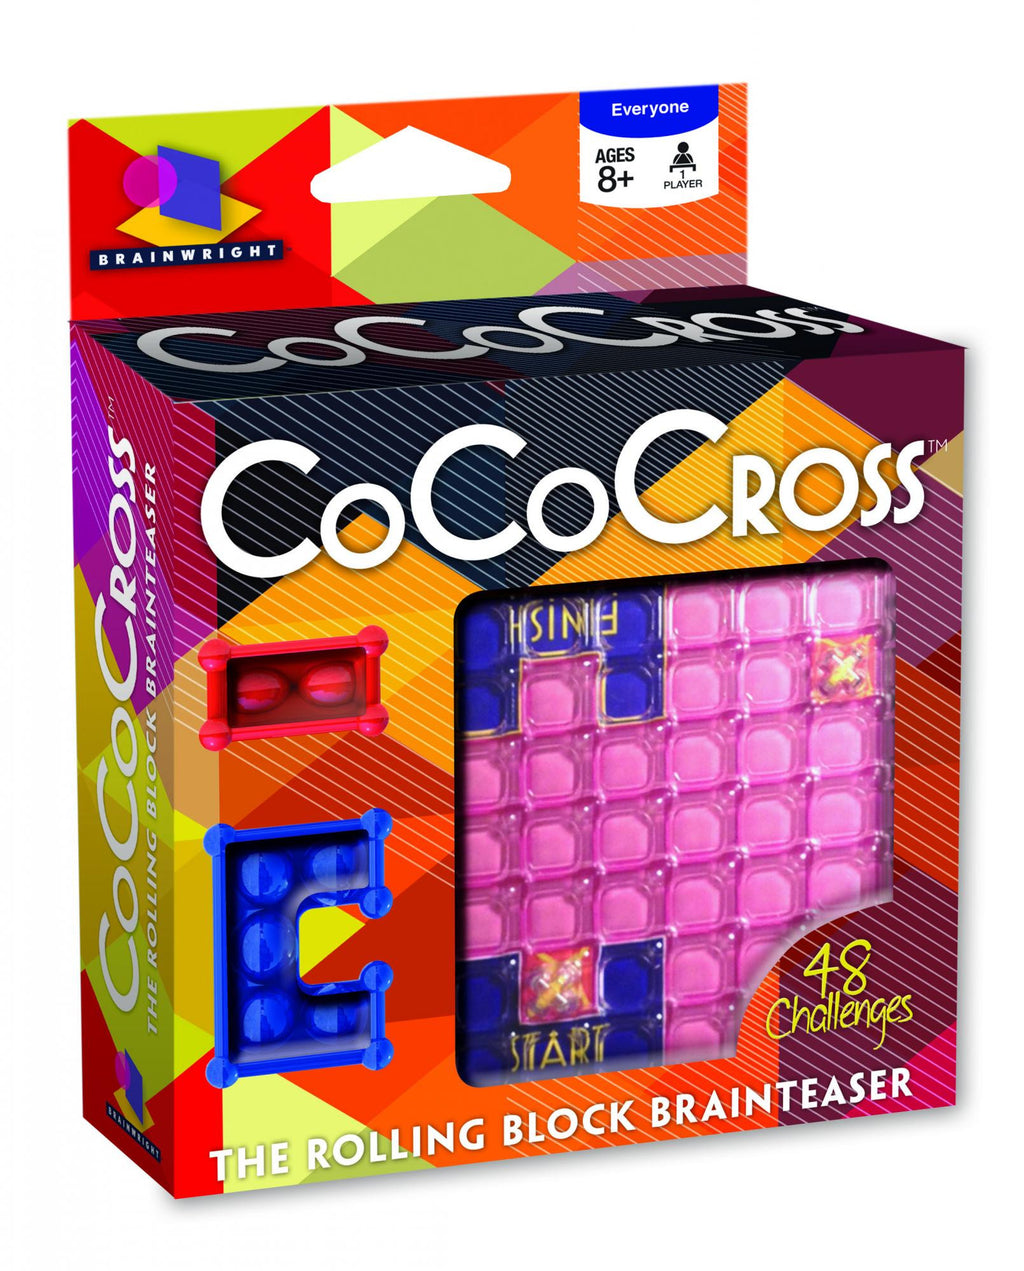 Brainwright - 83080 | CoCo Cross - The Rolling Block Brainteaser Puzzle